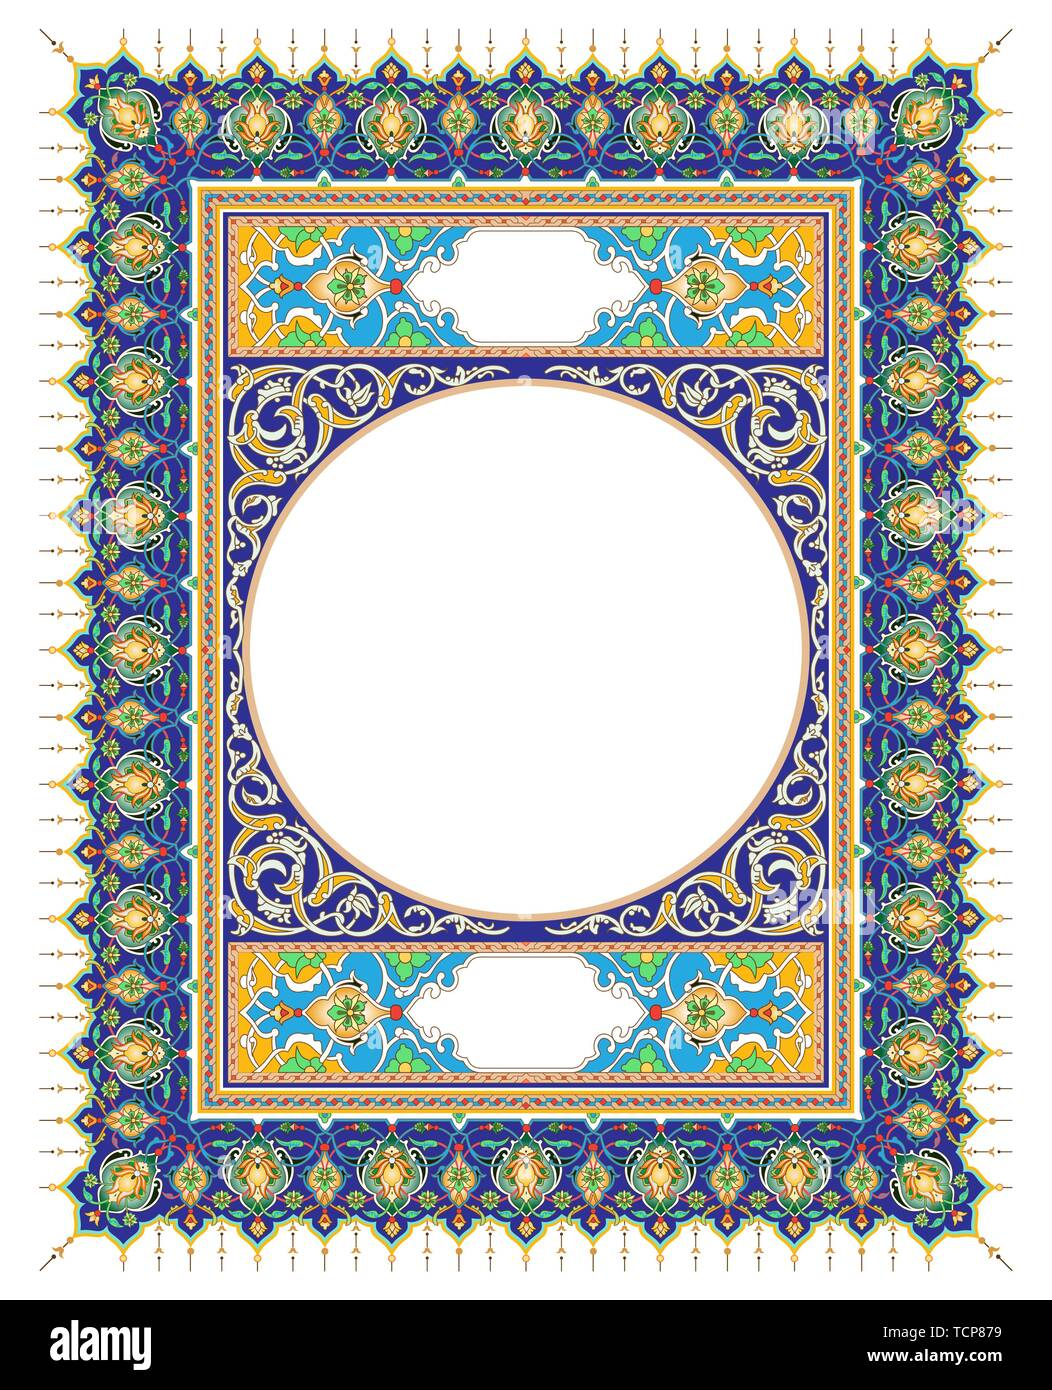 Inside Book Cover, Islamic Prayer Book - Stock Image